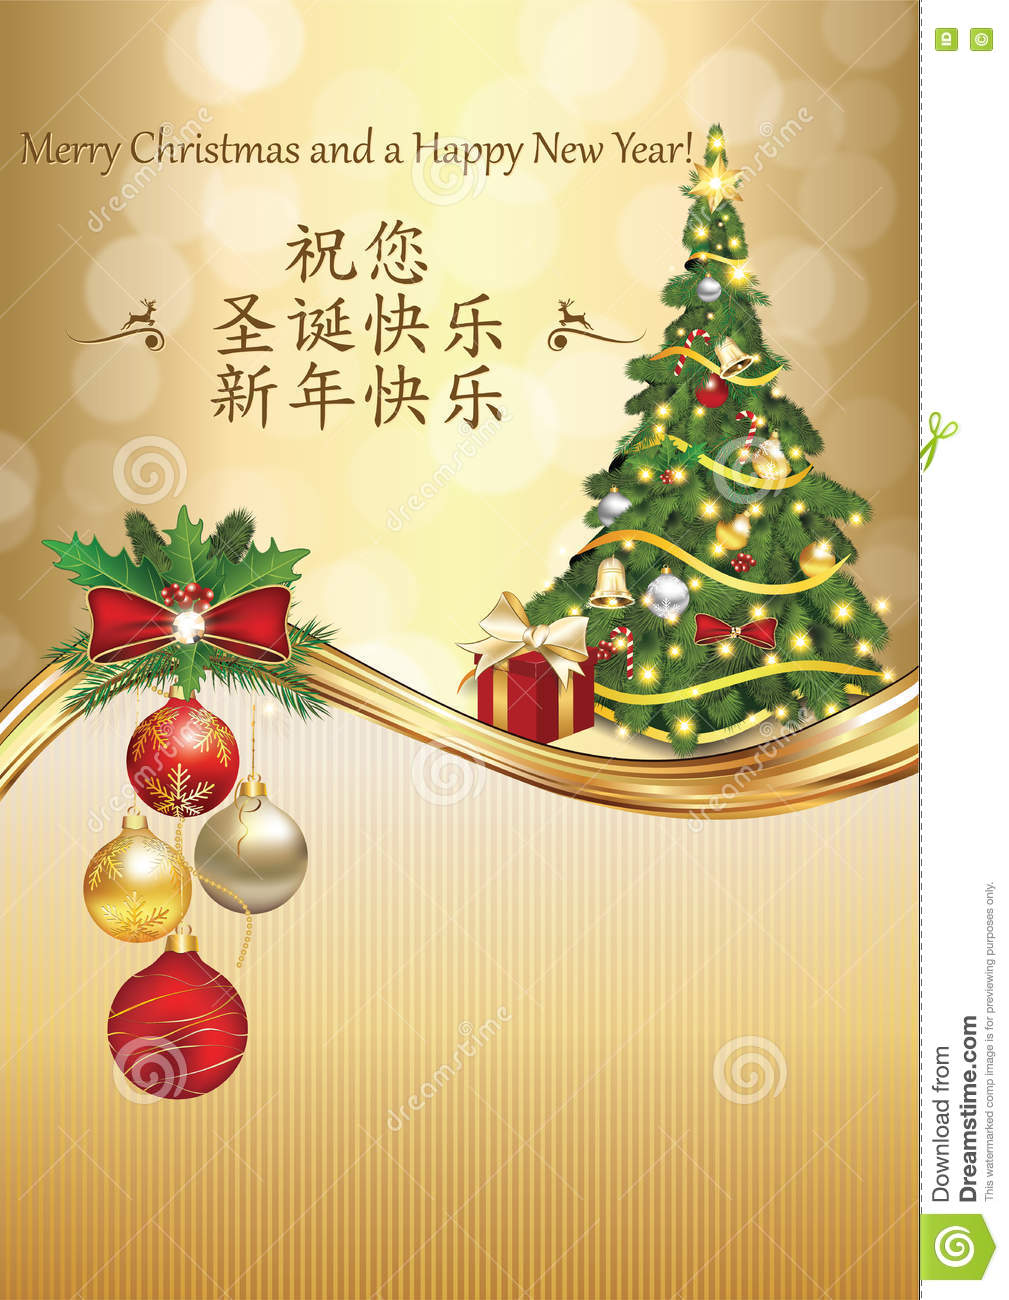 picture about Merry Christmas in Different Languages Printable called Greeting Card For Xmas And Fresh Calendar year Within just Chinese And